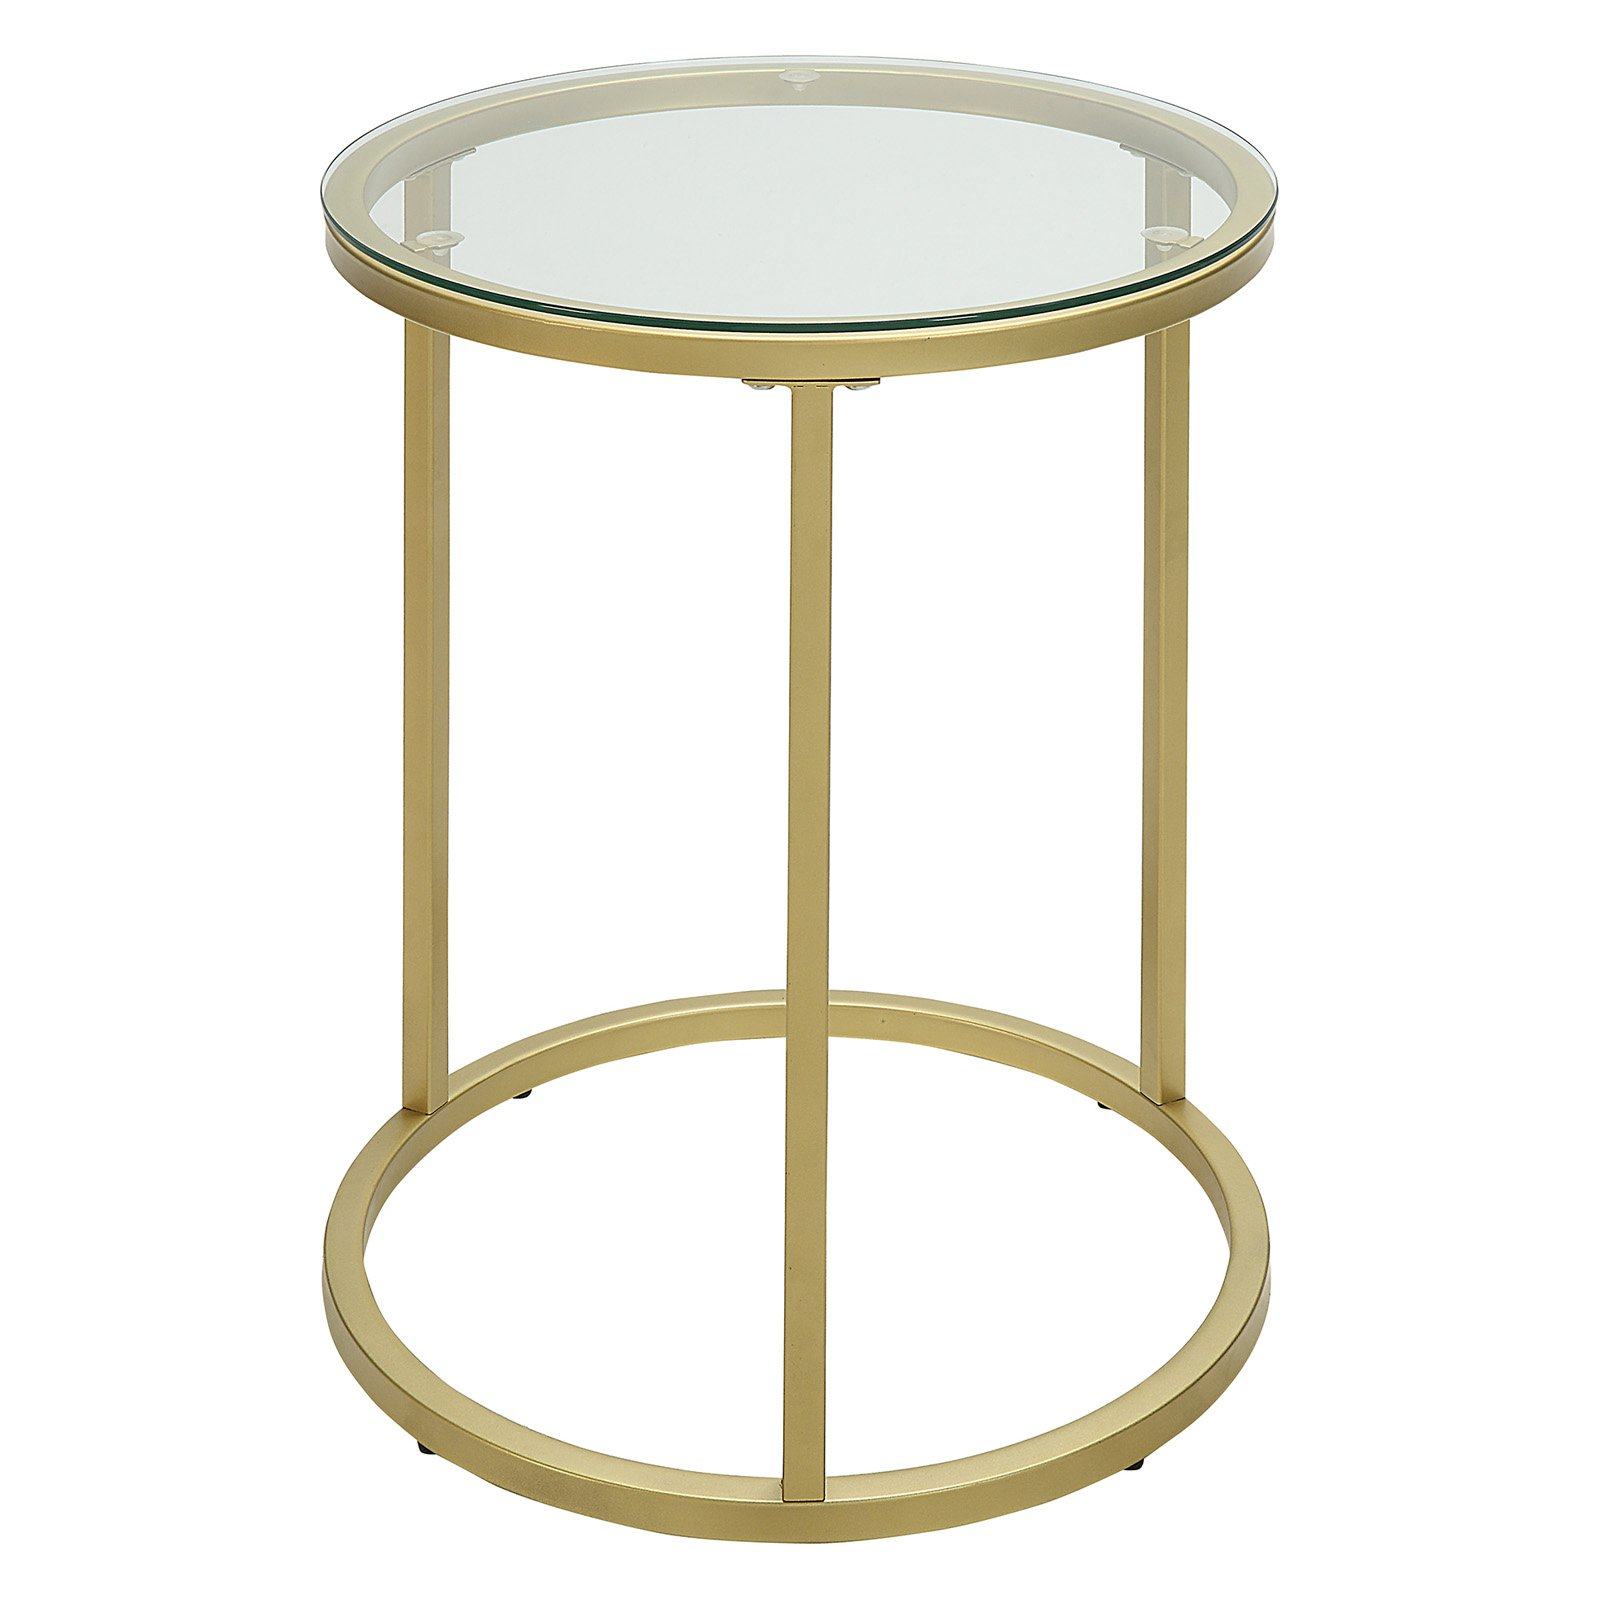 carolina chair table alva round glass top side accent inuse amp small white corner desk pottery barn tables living room chest cabinet metal patio umbrella stand mid century modern